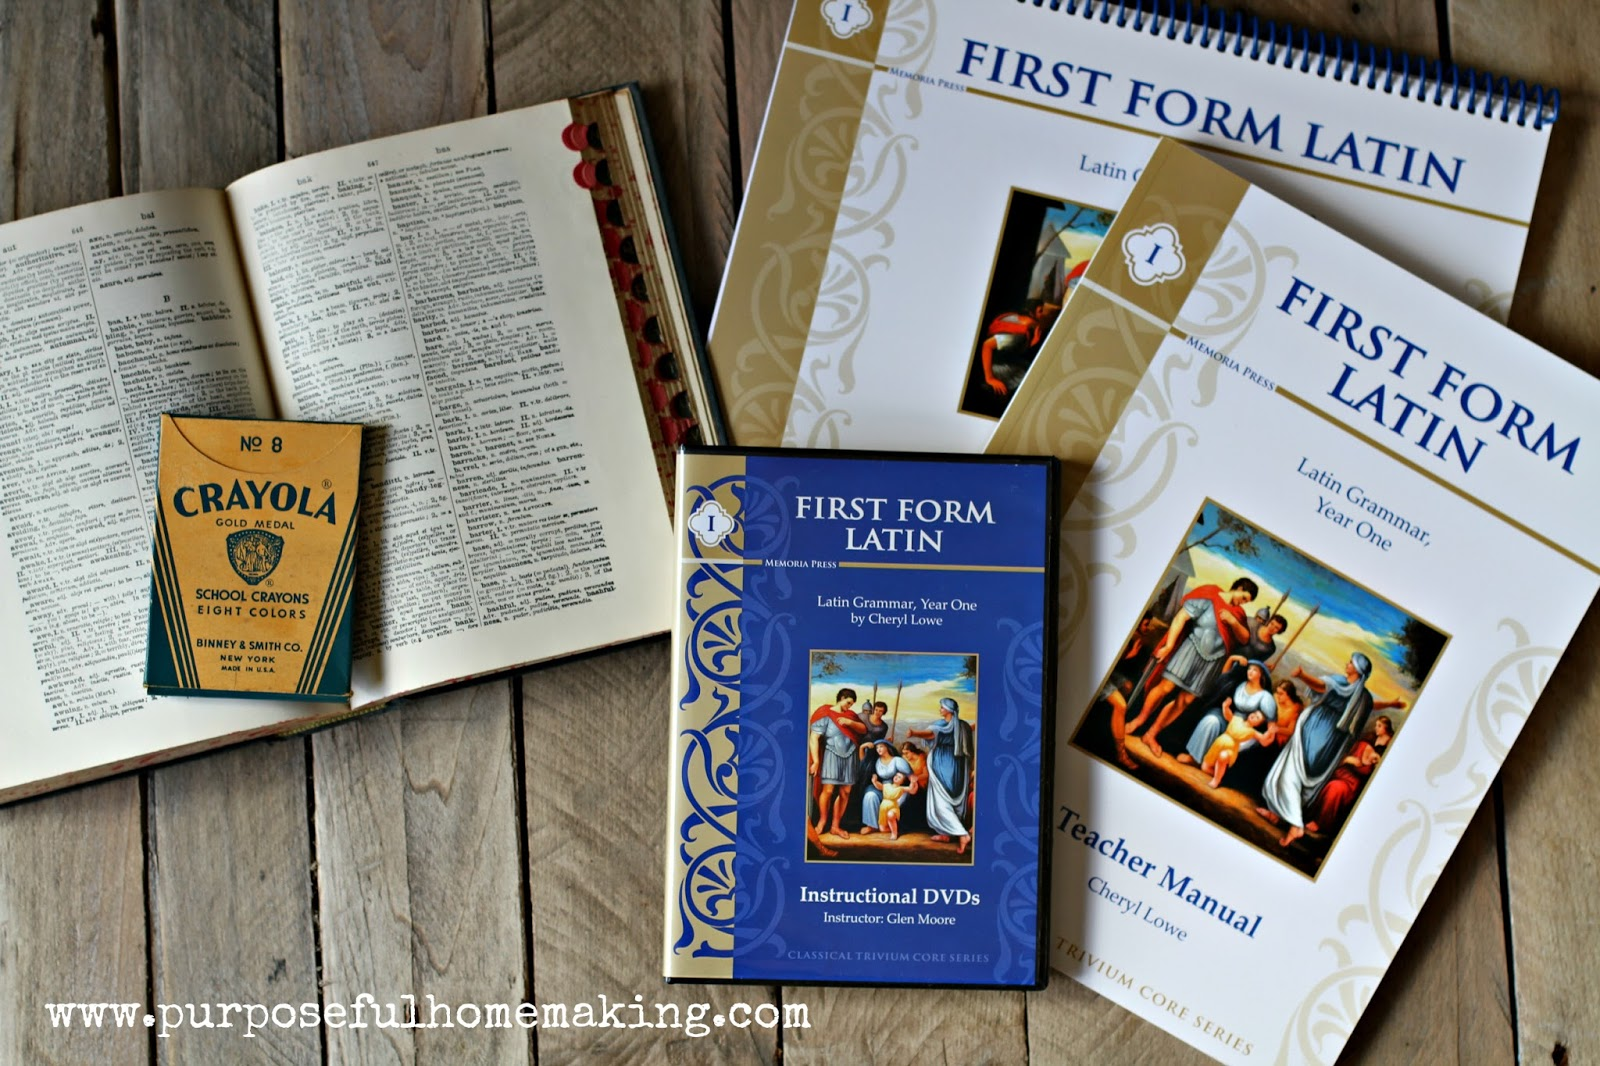 Purposeful Homemaking First Form Latin Curriculum A Review